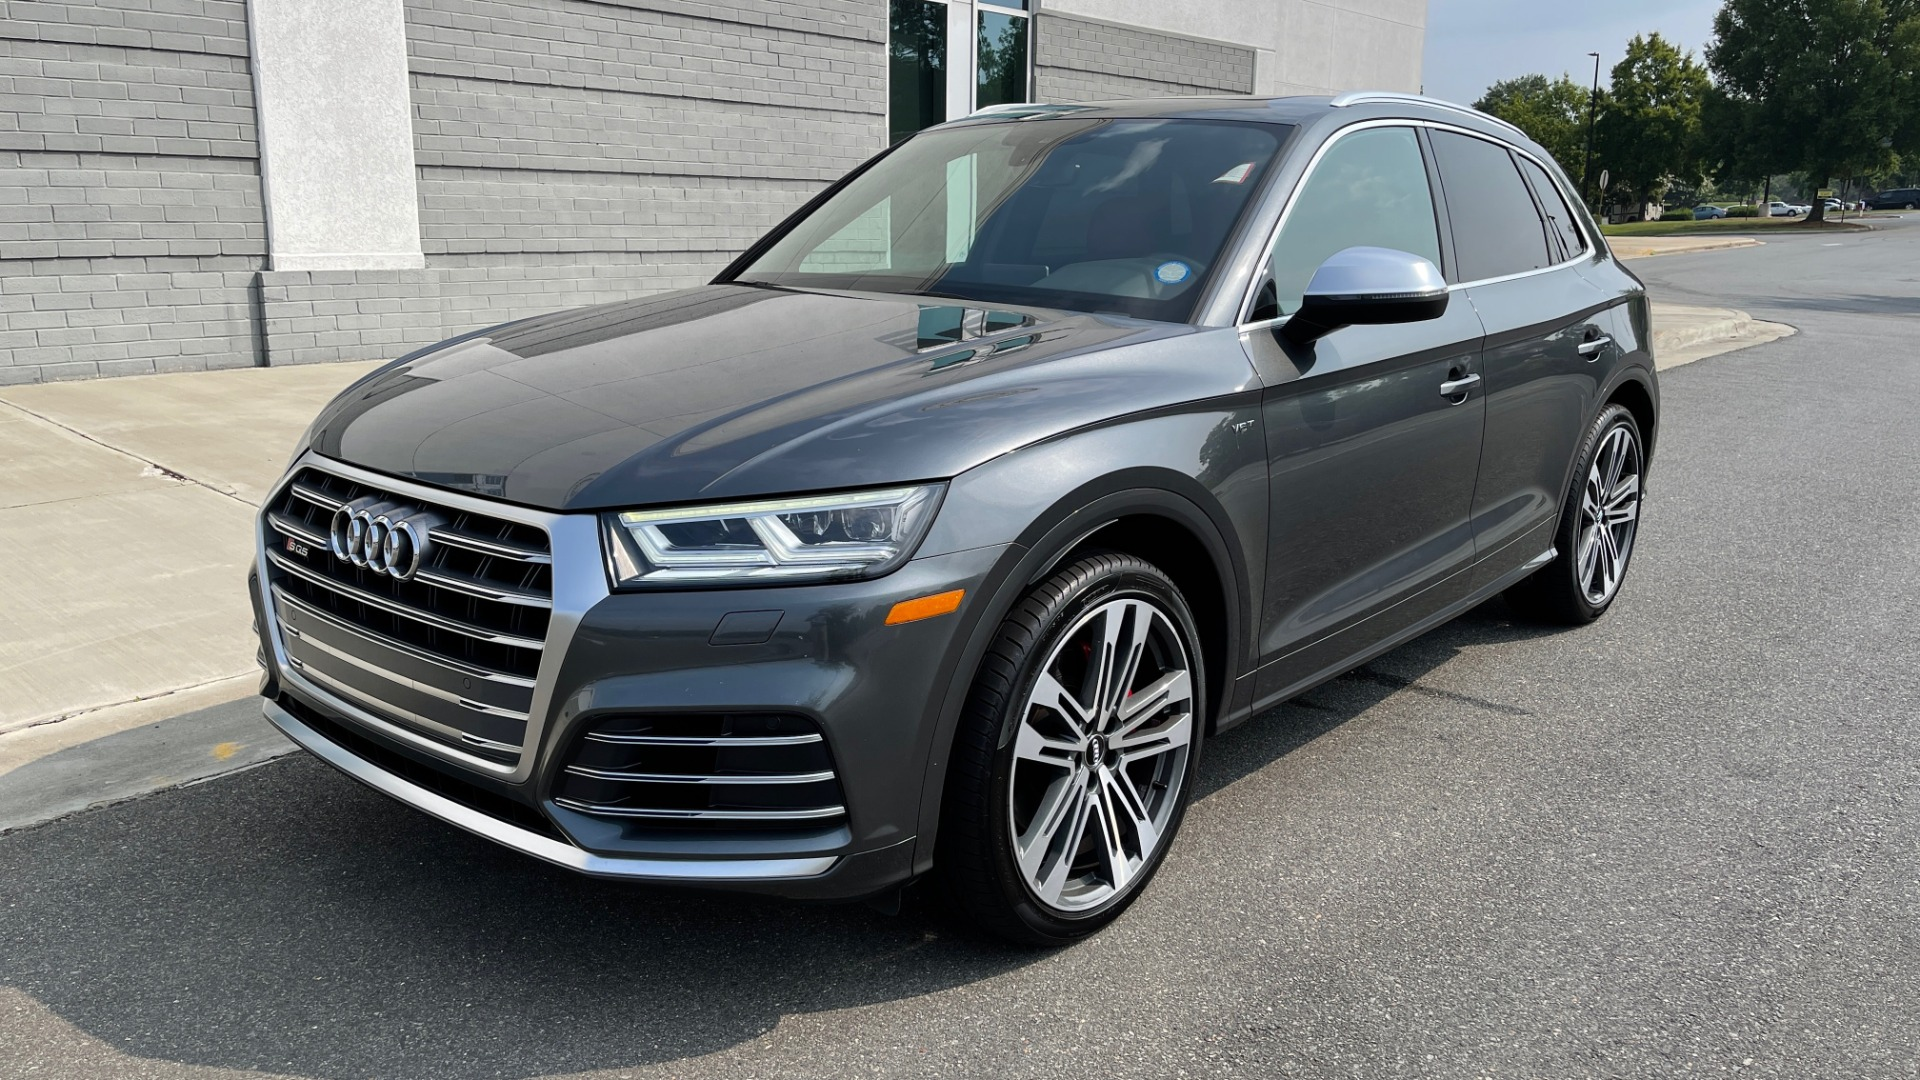 Used 2018 Audi SQ5 PREMIUM PLUS / S-SPORT / NAV / B&O SND / SUNROOF / REARVIEW for sale $43,995 at Formula Imports in Charlotte NC 28227 3